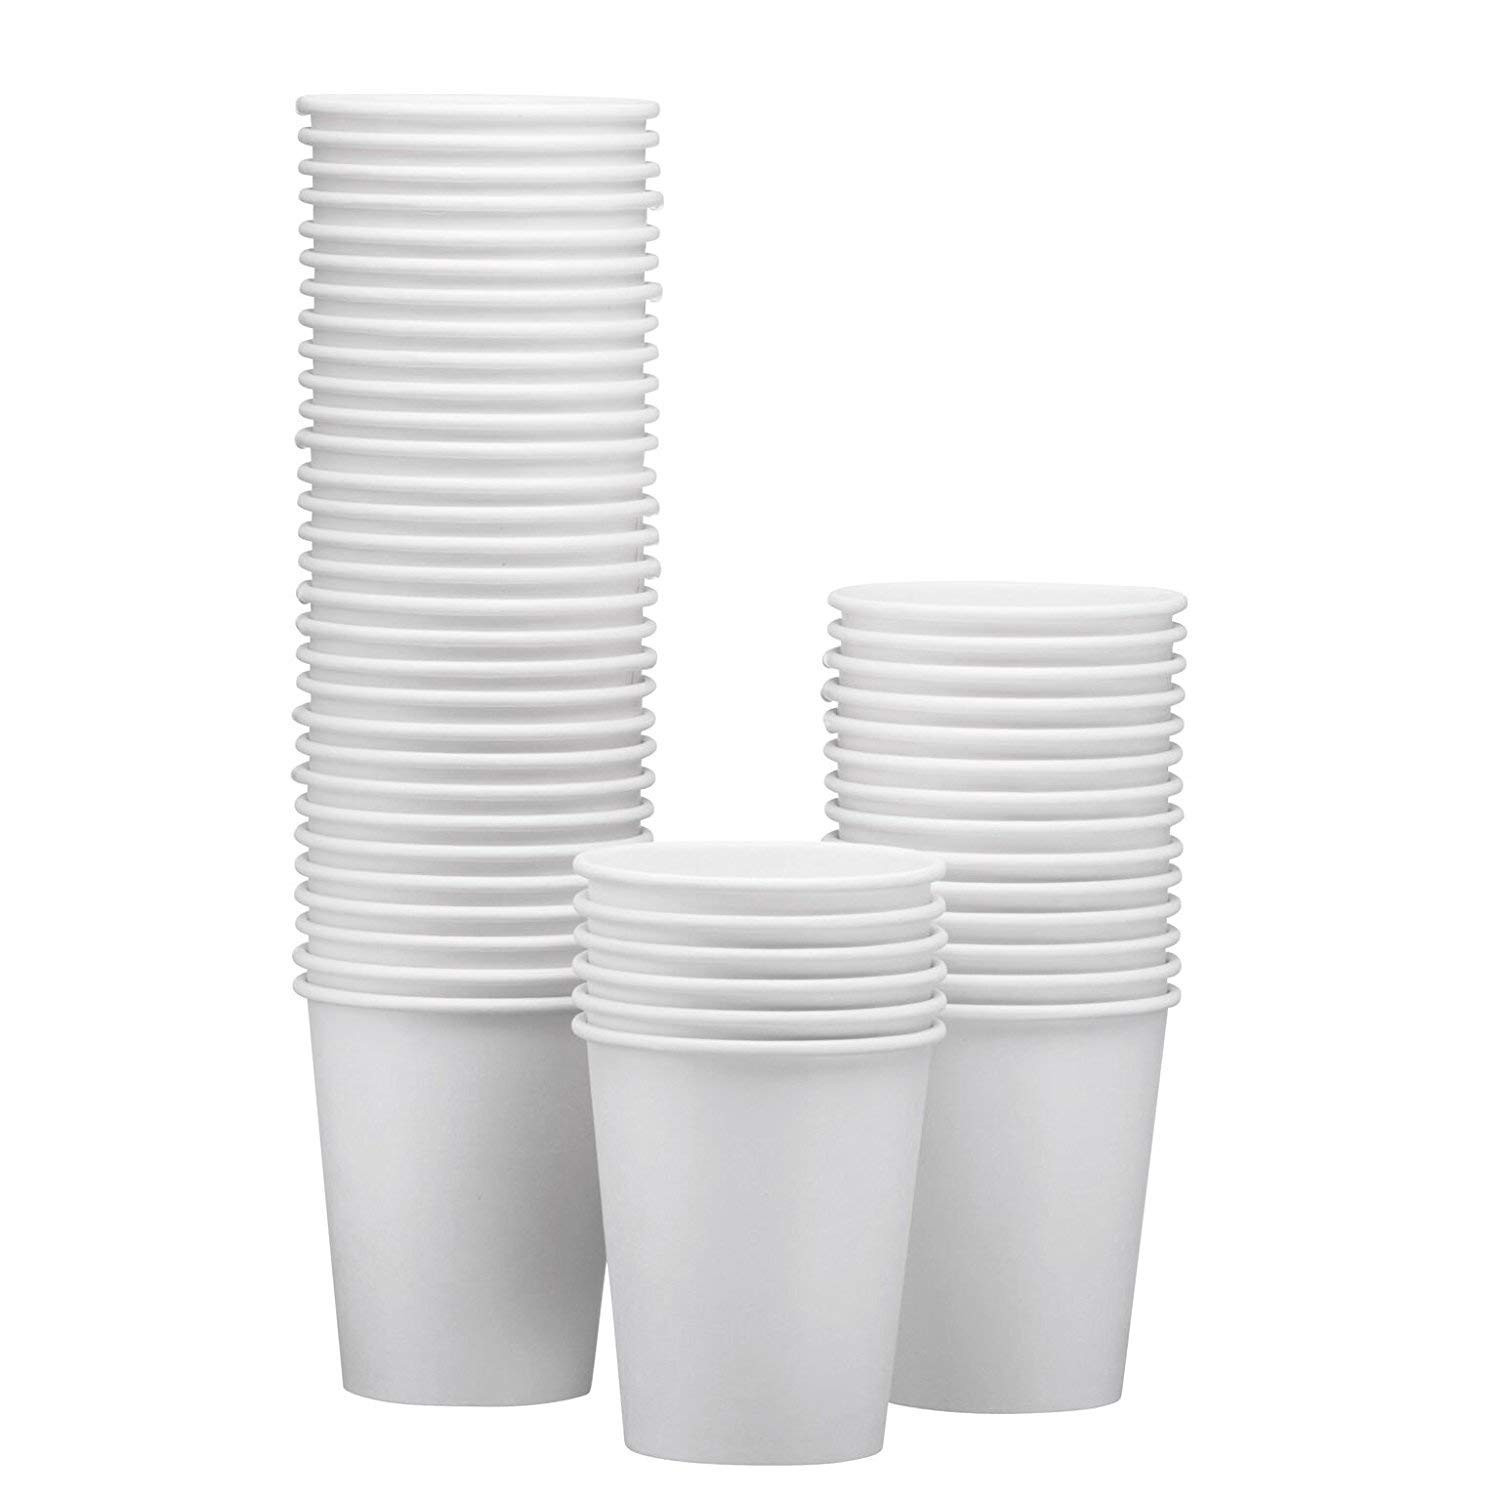 14 Inch Cylinder Vases In Bulk Of Amazon Com White Paper Hot Cup 12 Ounce Capacity Pack Of 50 Pertaining to Amazon Com White Paper Hot Cup 12 Ounce Capacity Pack Of 50 Kitchen Dining